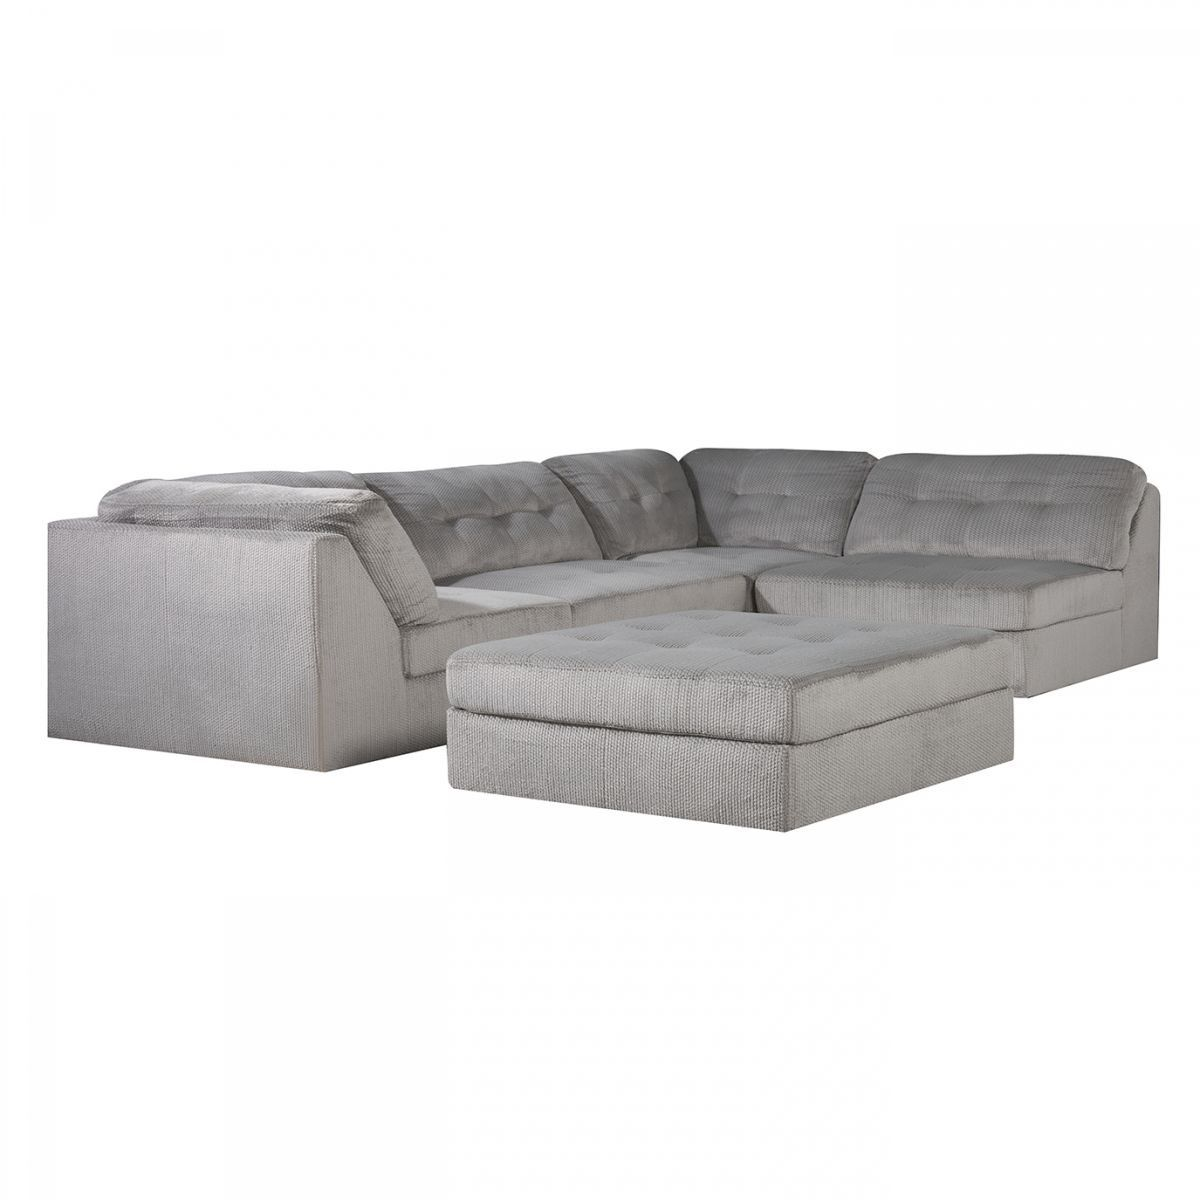 Badcock Amp More Venus Grey 5 Pc Modular Sectional Grey